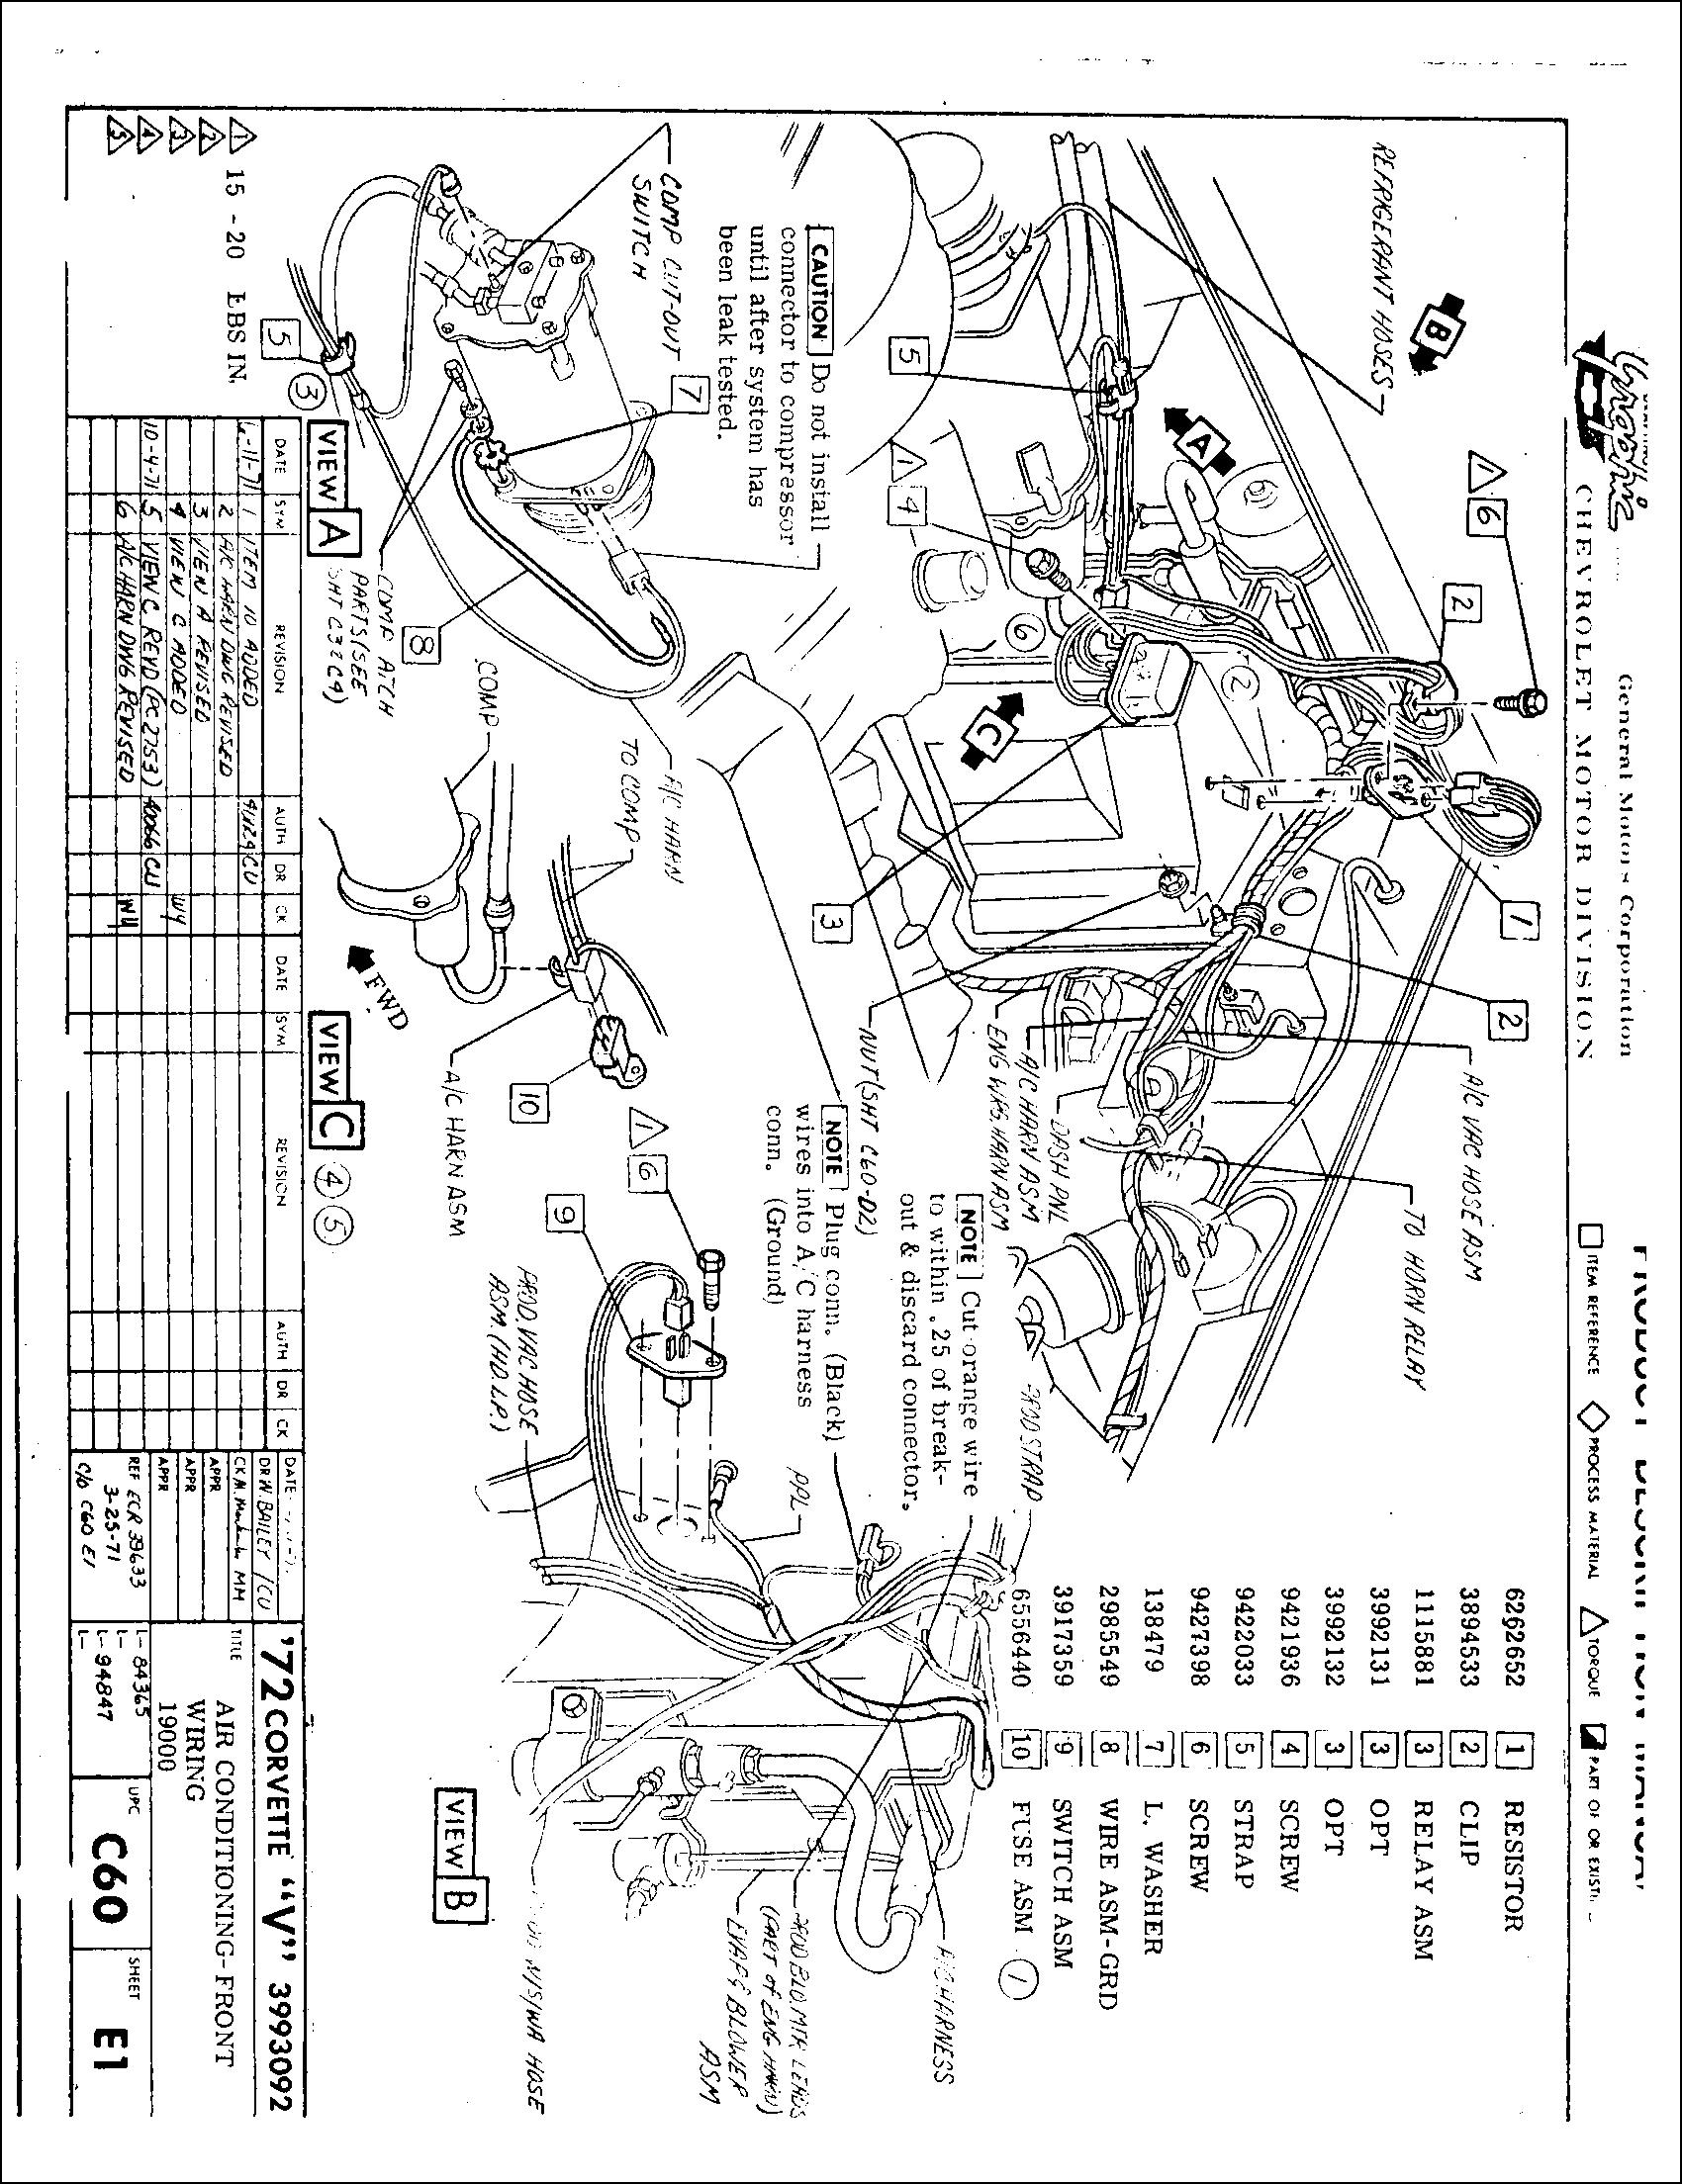 1969 firebird headlight wiring diagram